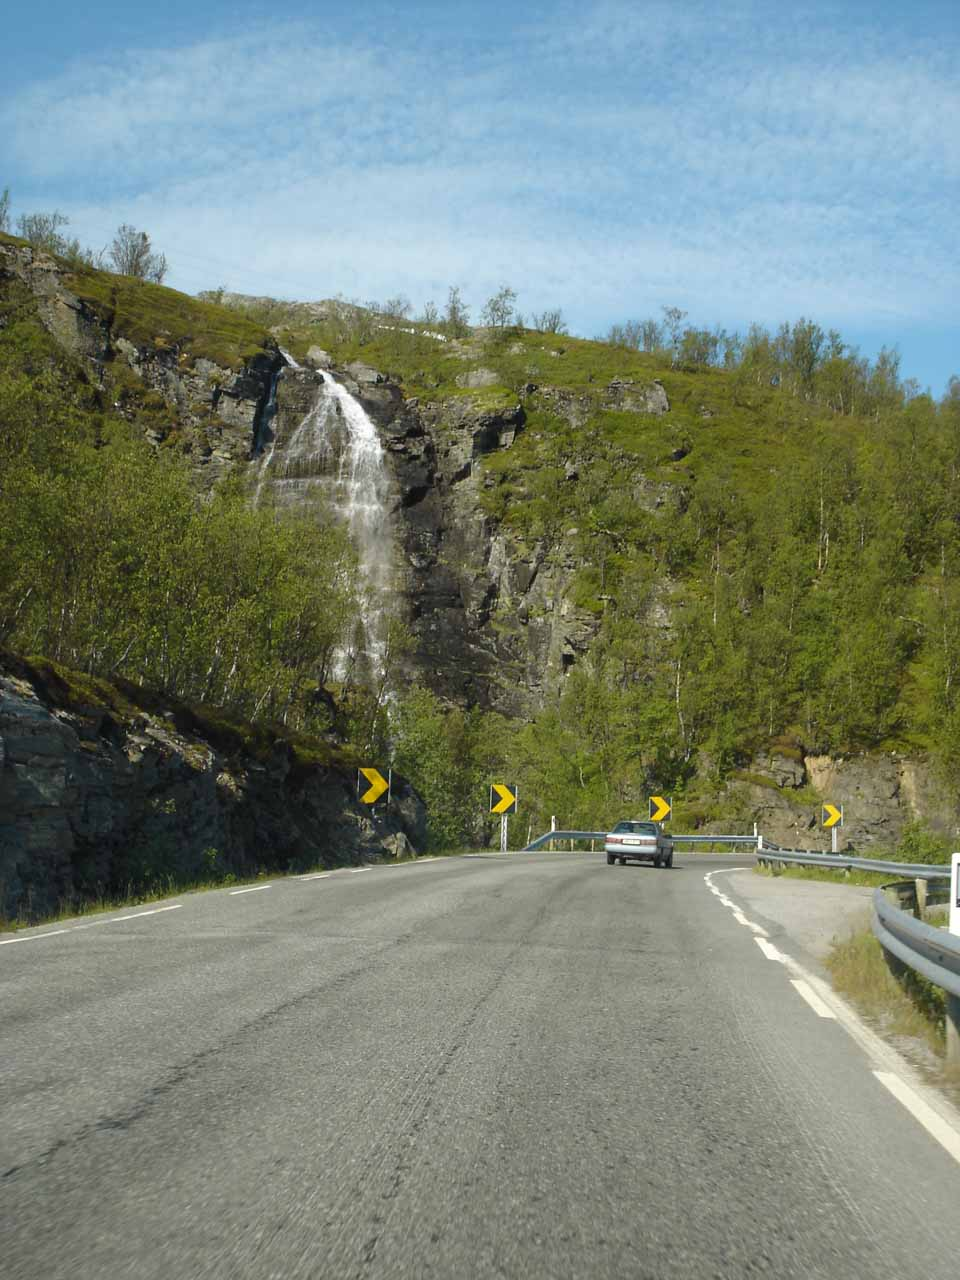 As we headed south from Storslett along the E6, we noticed this roadside waterfall